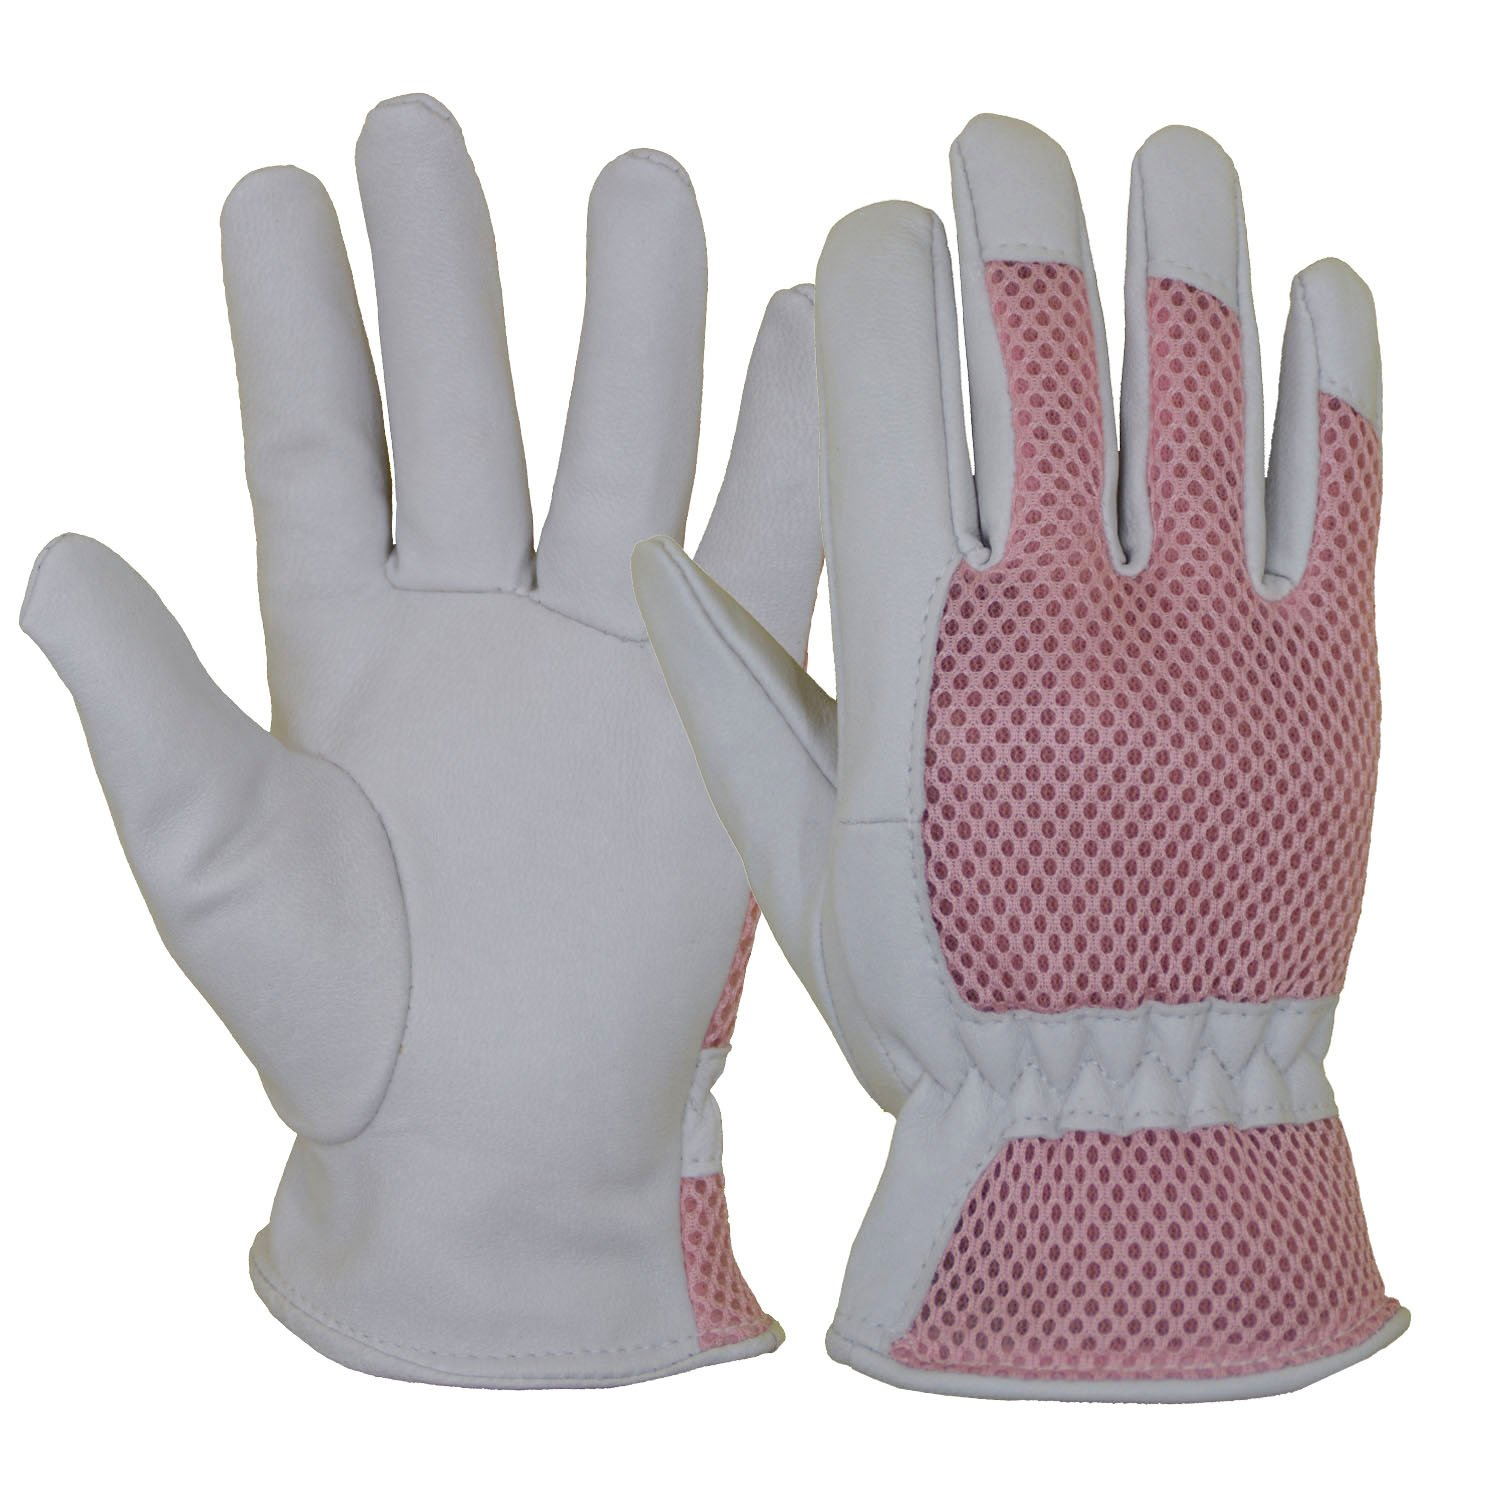 Goatskin Leather Gardening Gloves Women, 3D Mesh Comfort Fit- Improves Dexterity and Breathability Design, Scratch Resistance Garden Working Gloves for Vegetable or Pruning Roses (Medium/Pink)